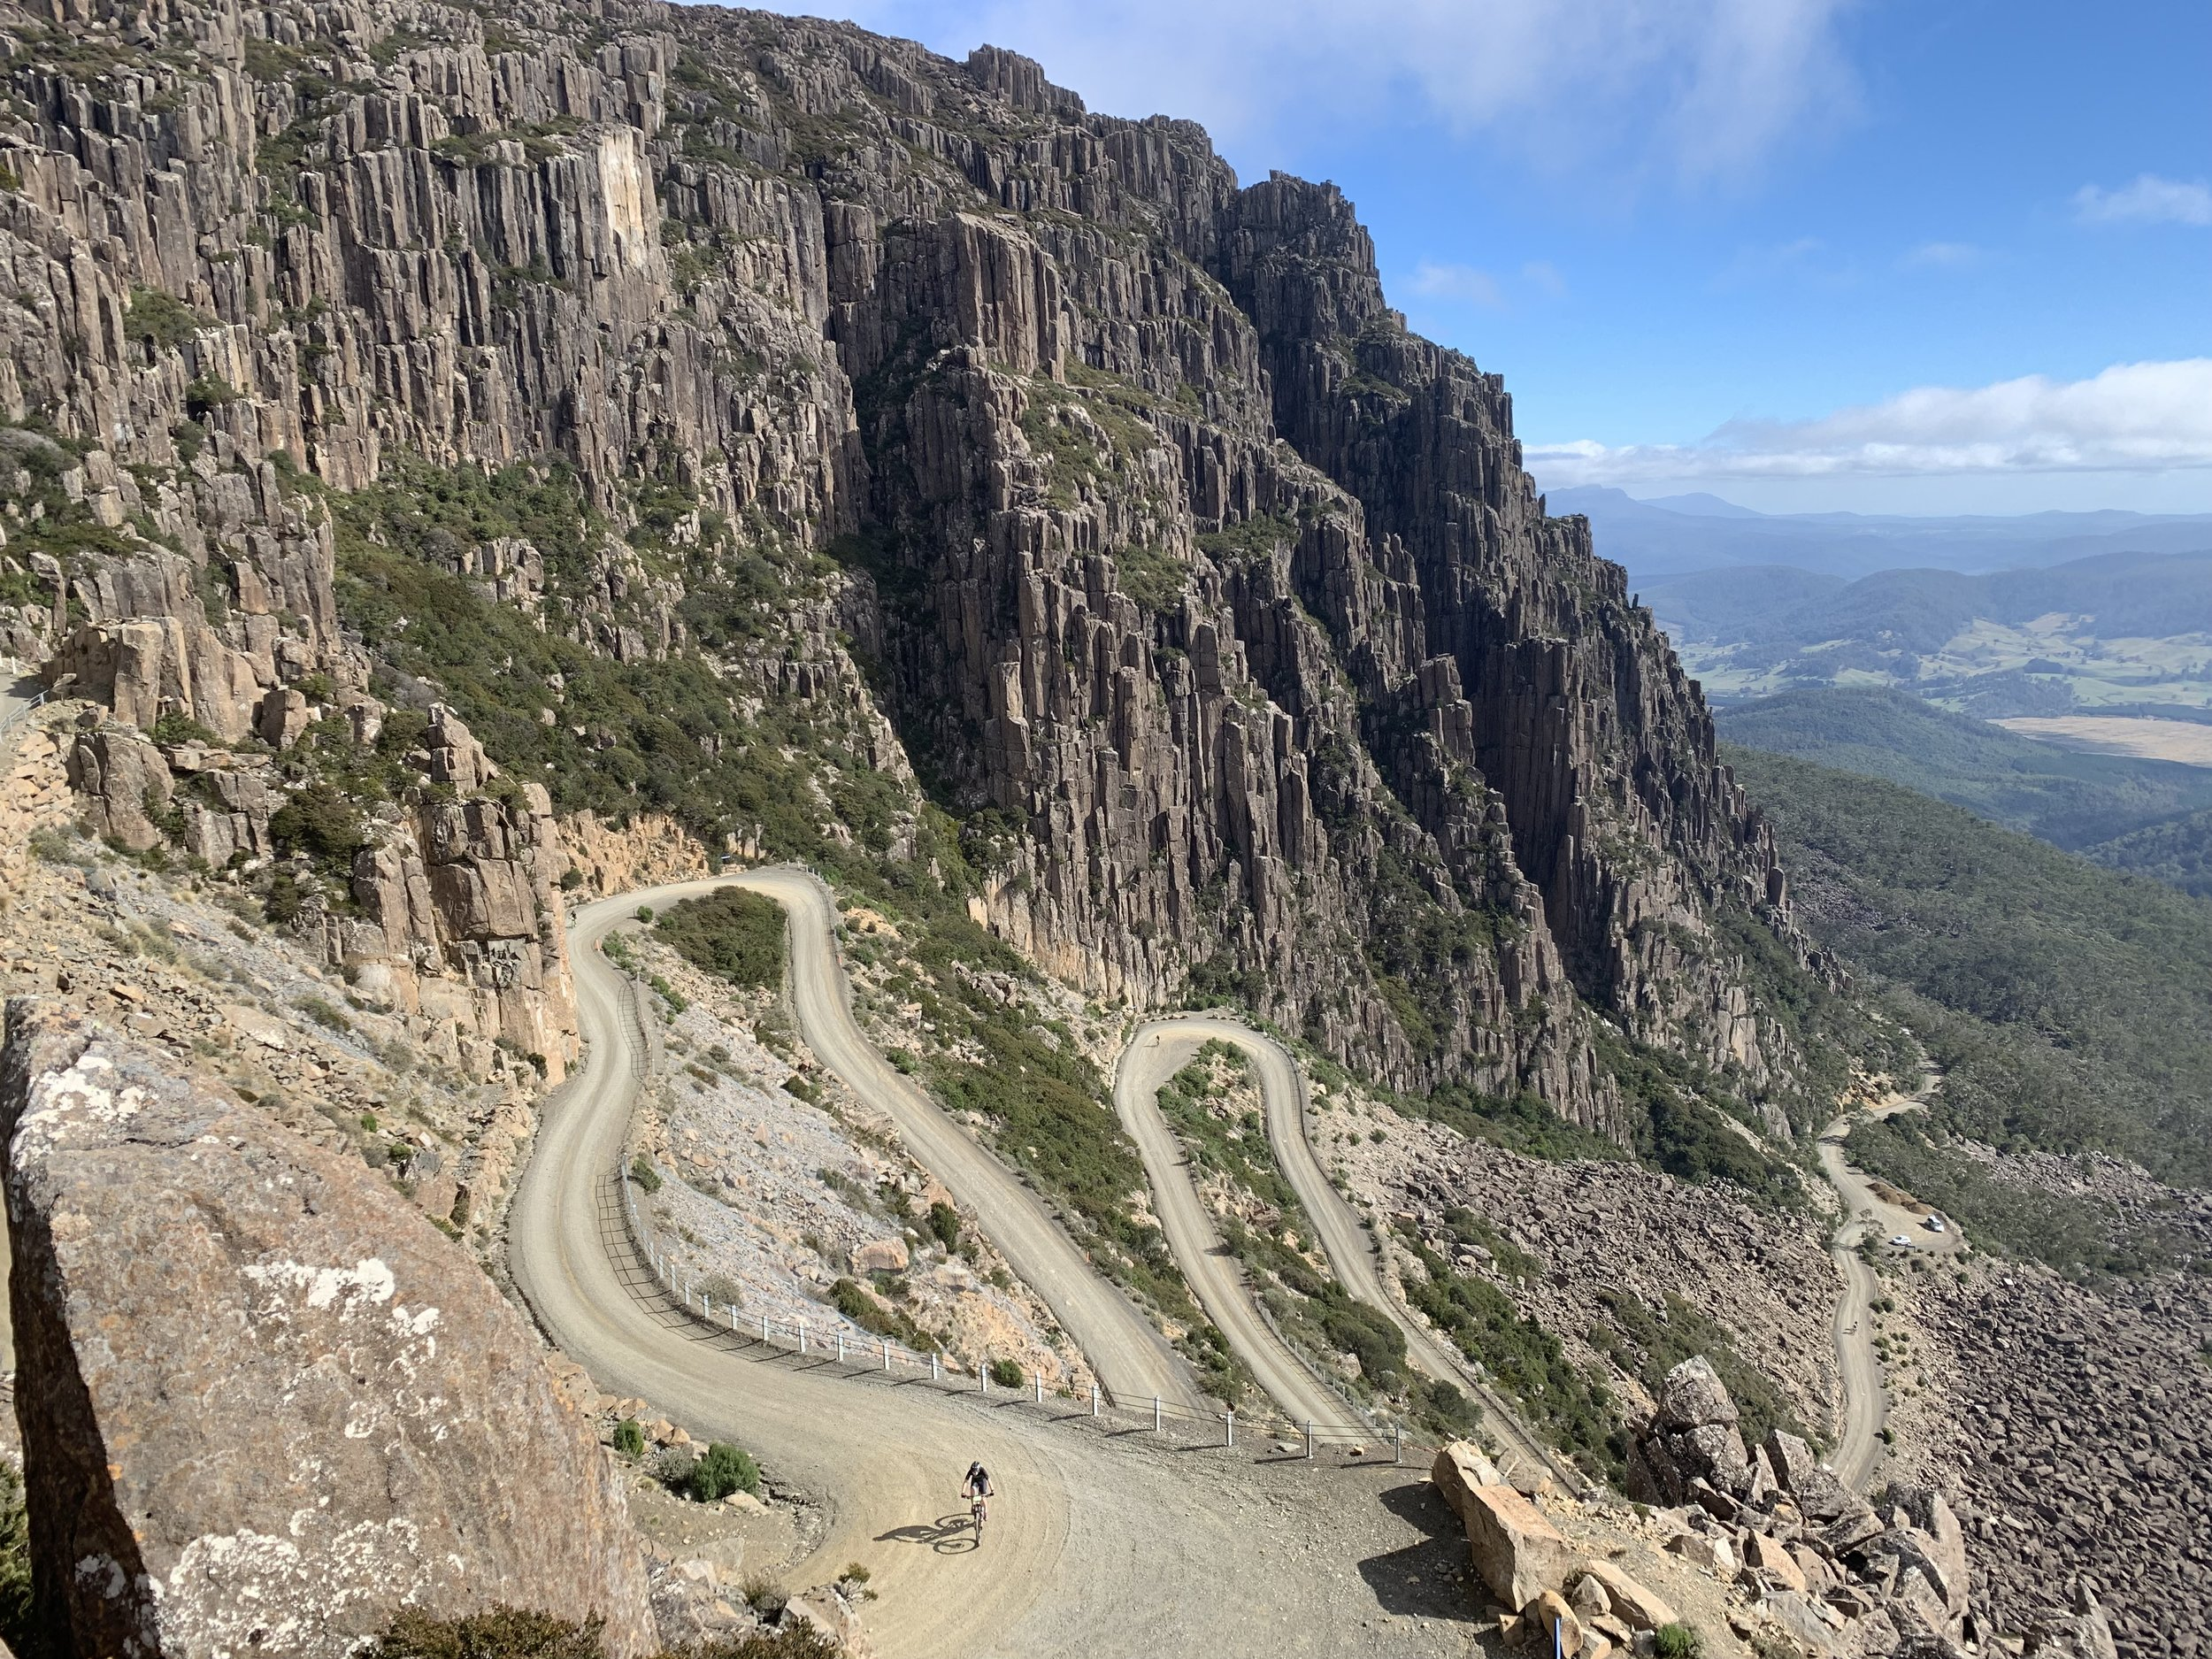 The climb to Ben Lomond ski village in Tasmania is the state's highest road at close to 1600m asl. Photo: M. Pulcipher